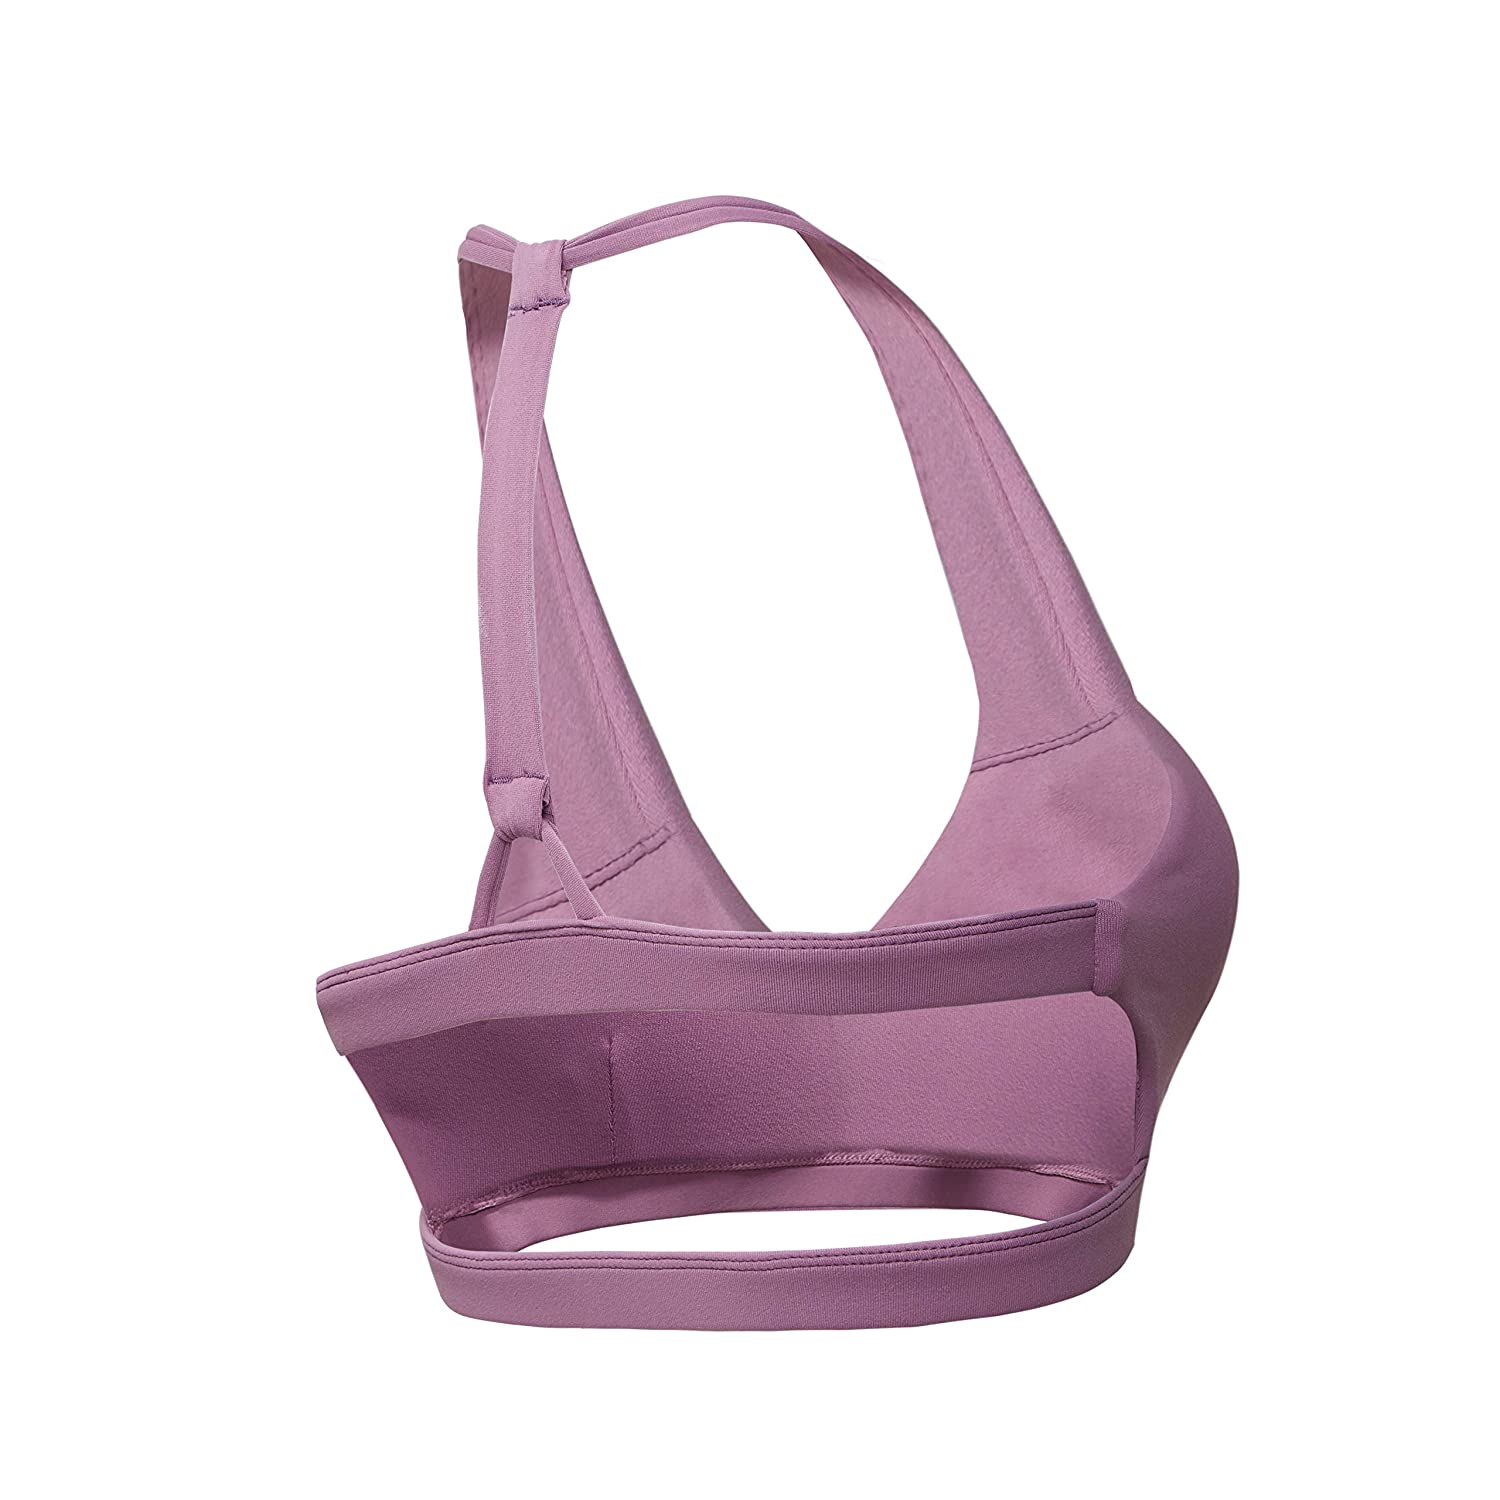 Sport Bras for Women Front Criss-Cross T-Back Strappy Removable Padded High Impact Support Yoga Gym Running Activewear